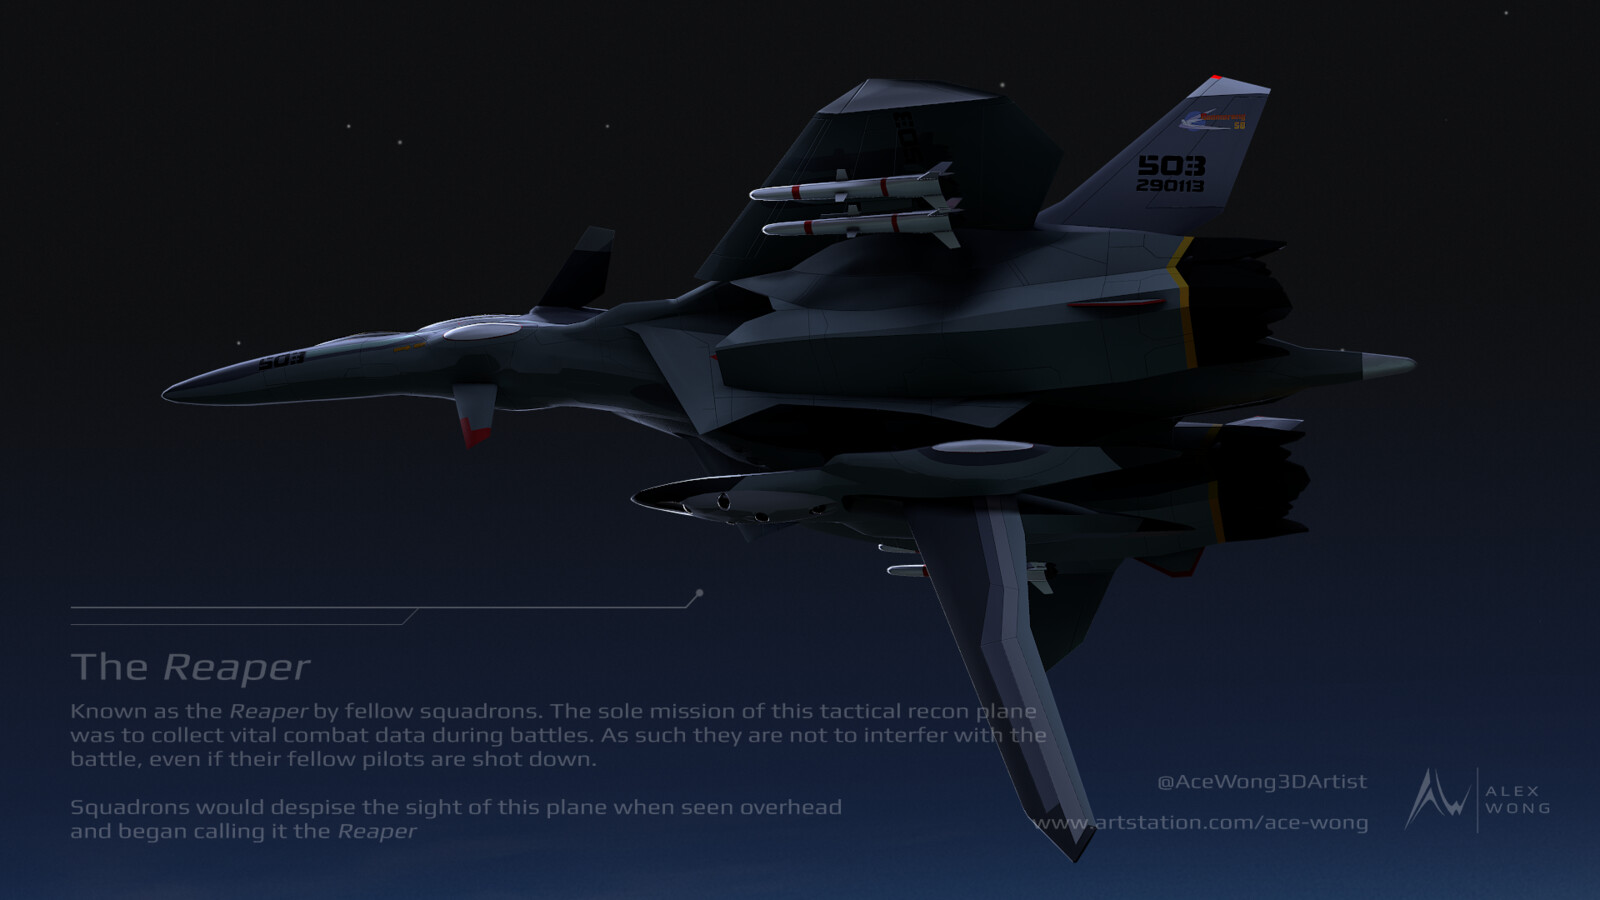 The Reaper - I created this render shot to try and portray how fellow pilots would see the aircraft in the series